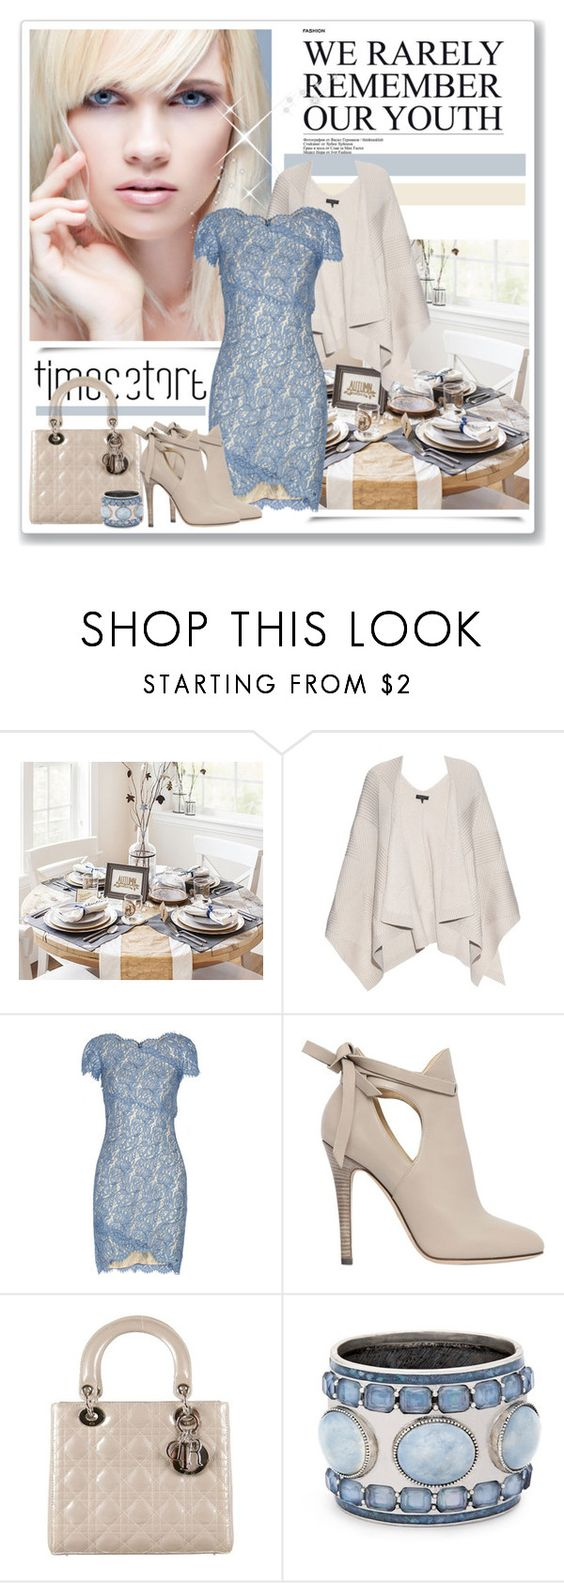 """TS"" by stranjakivana ❤ liked on Polyvore featuring rag & bone, Lover, Jimmy Choo, Christian Dior and Chico's"